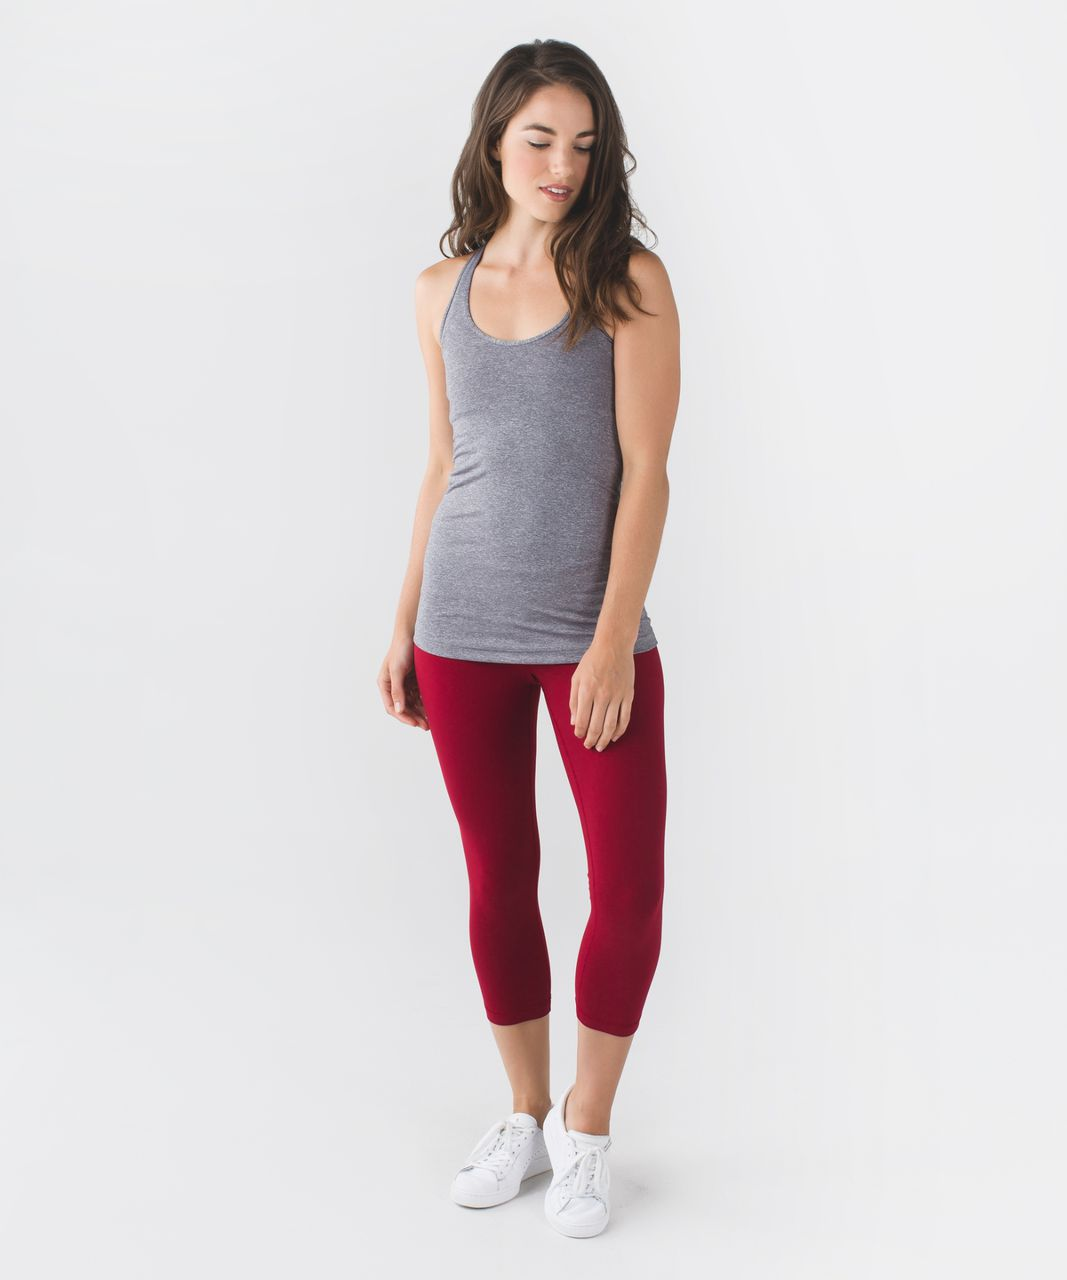 Lululemon Wunder Under Crop II *Full-On Luon - Deepest Cranberry / Boom Juice